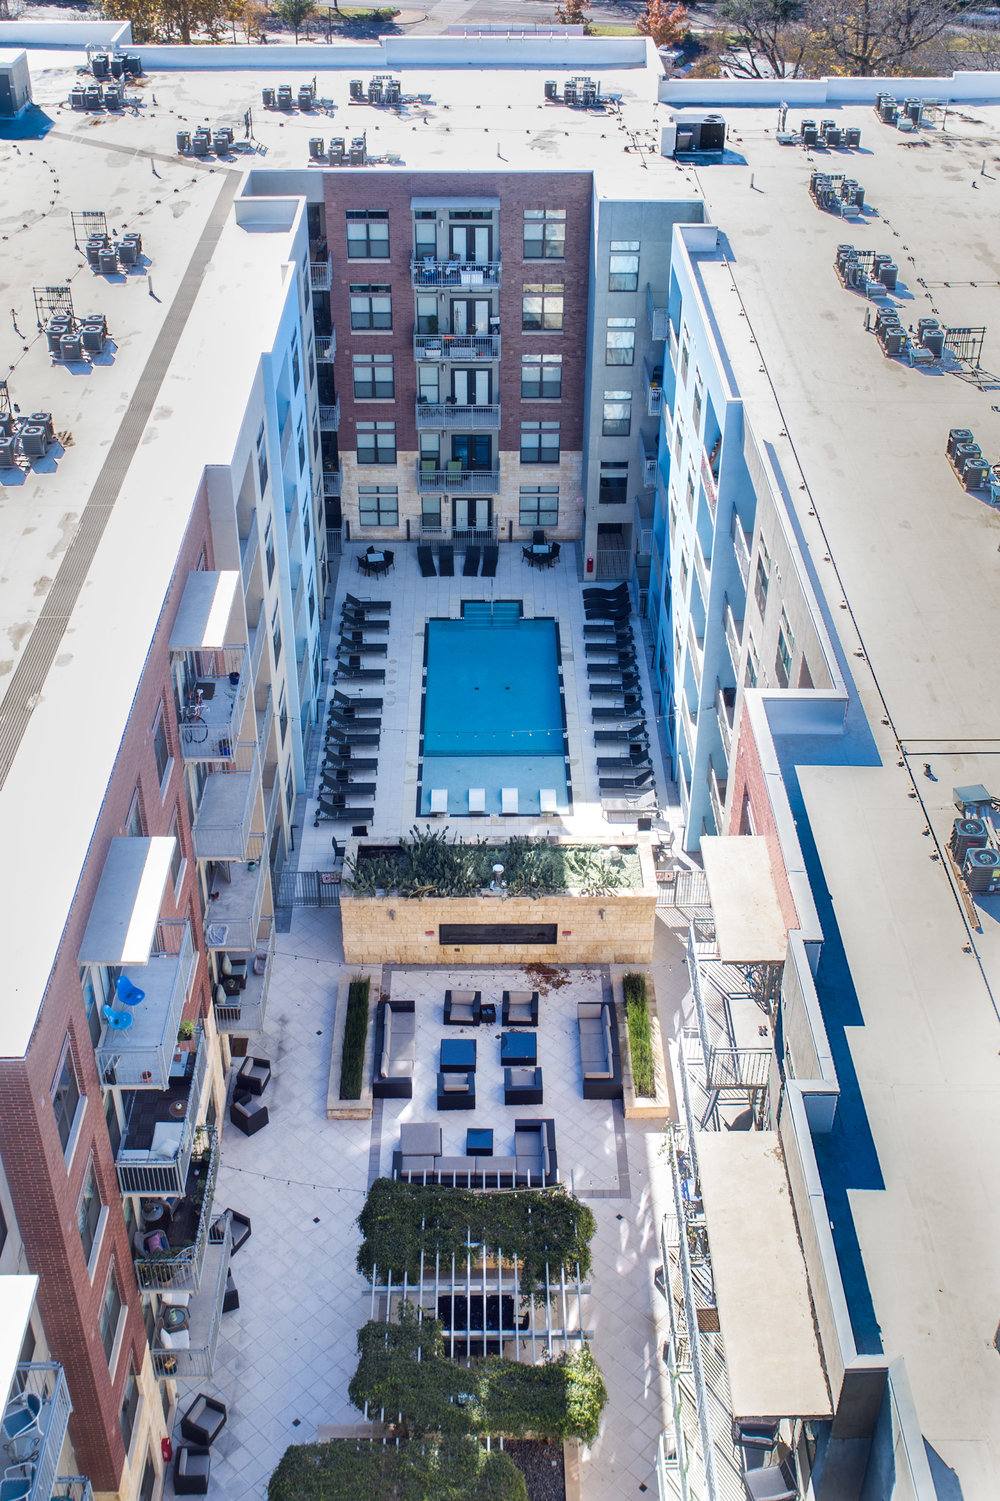 Coldwater - Austin, Texas (Pool view from above)